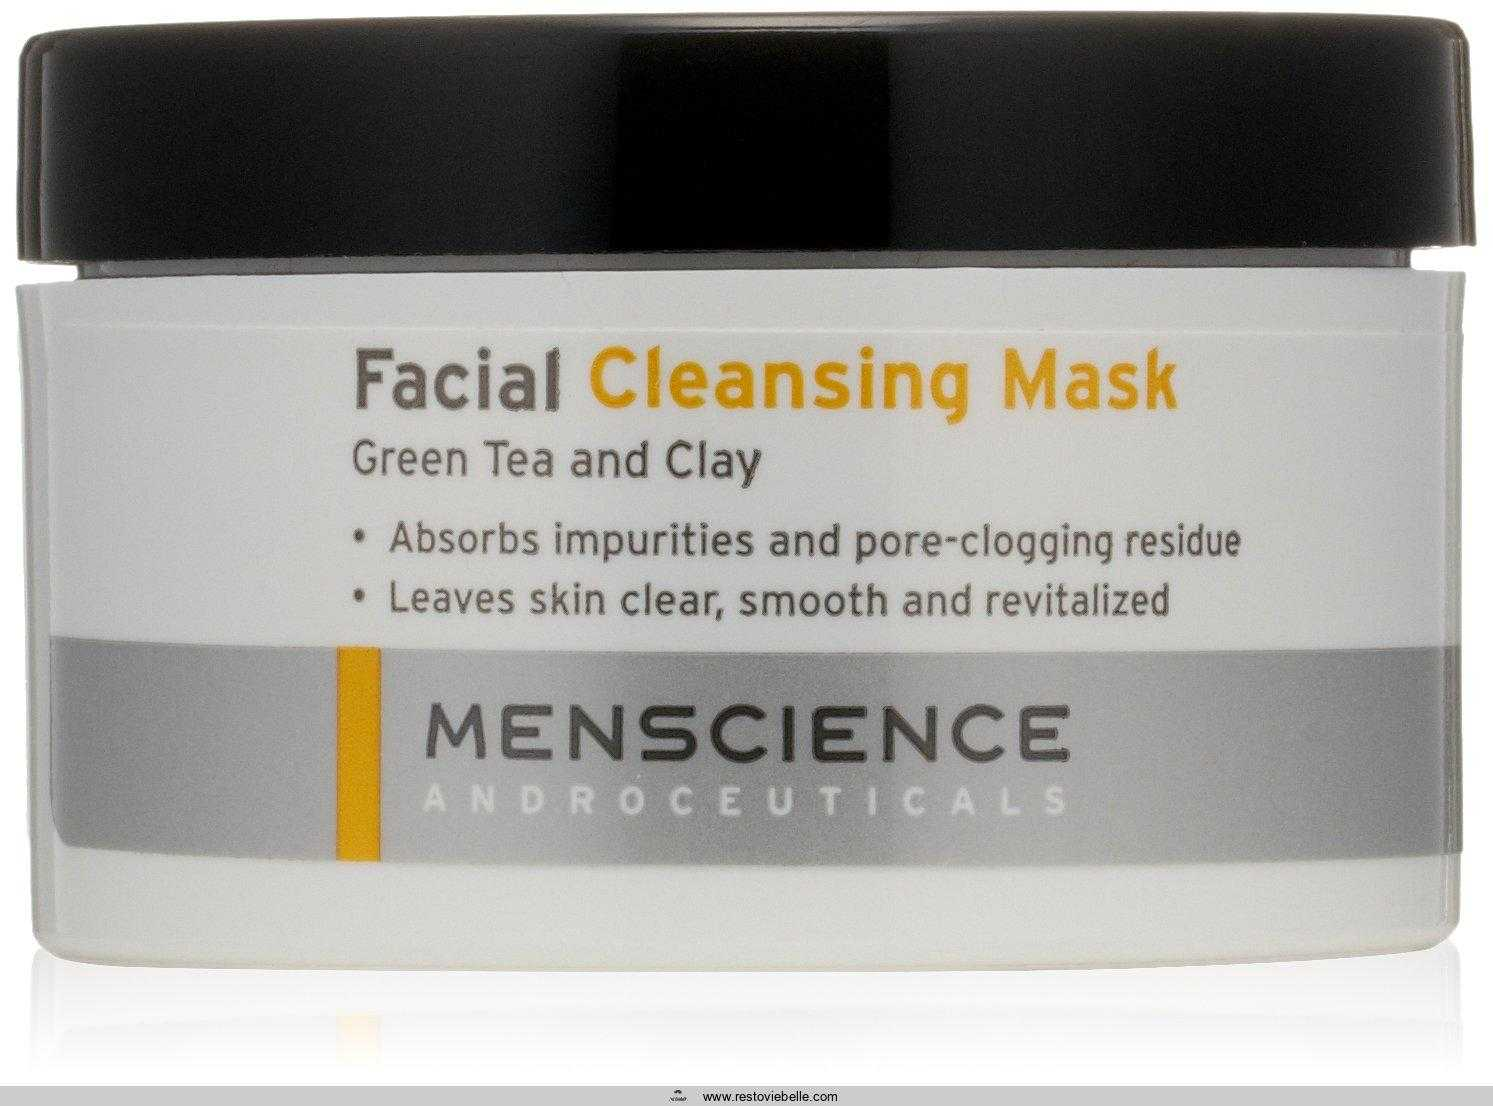 MenScience Androceuticals Facial Cleansing Mask,